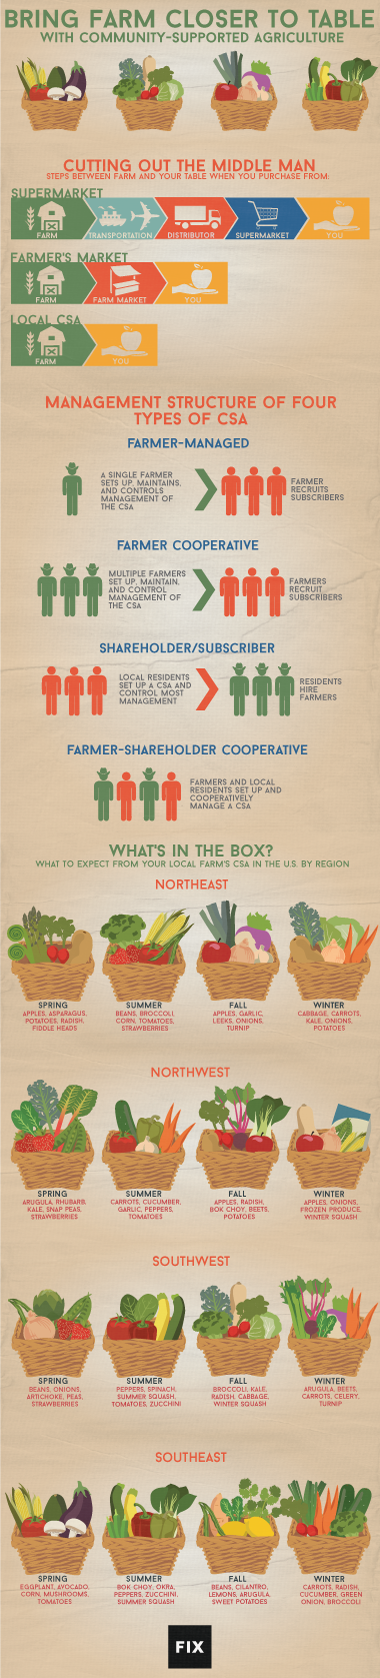 farm-to-table-embed-small.png